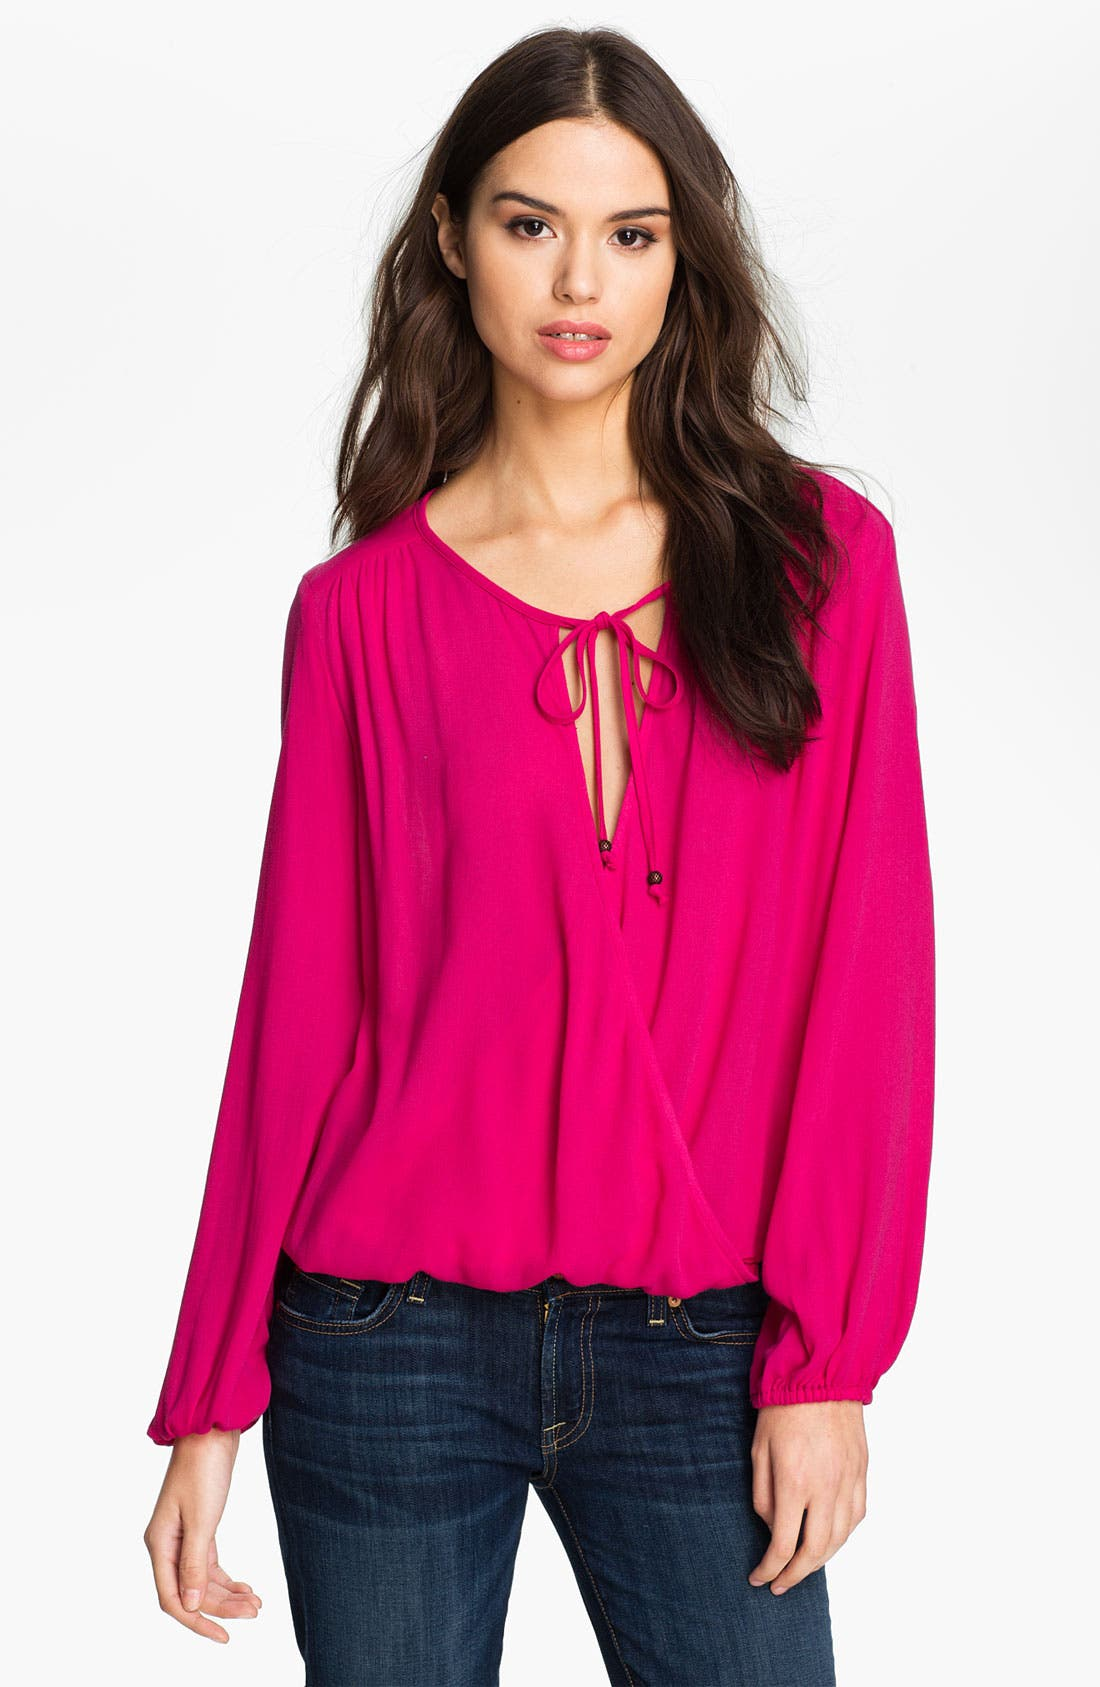 Alternate Image 1 Selected - Ella Moss 'Stella' Tie Neck Surplice Top